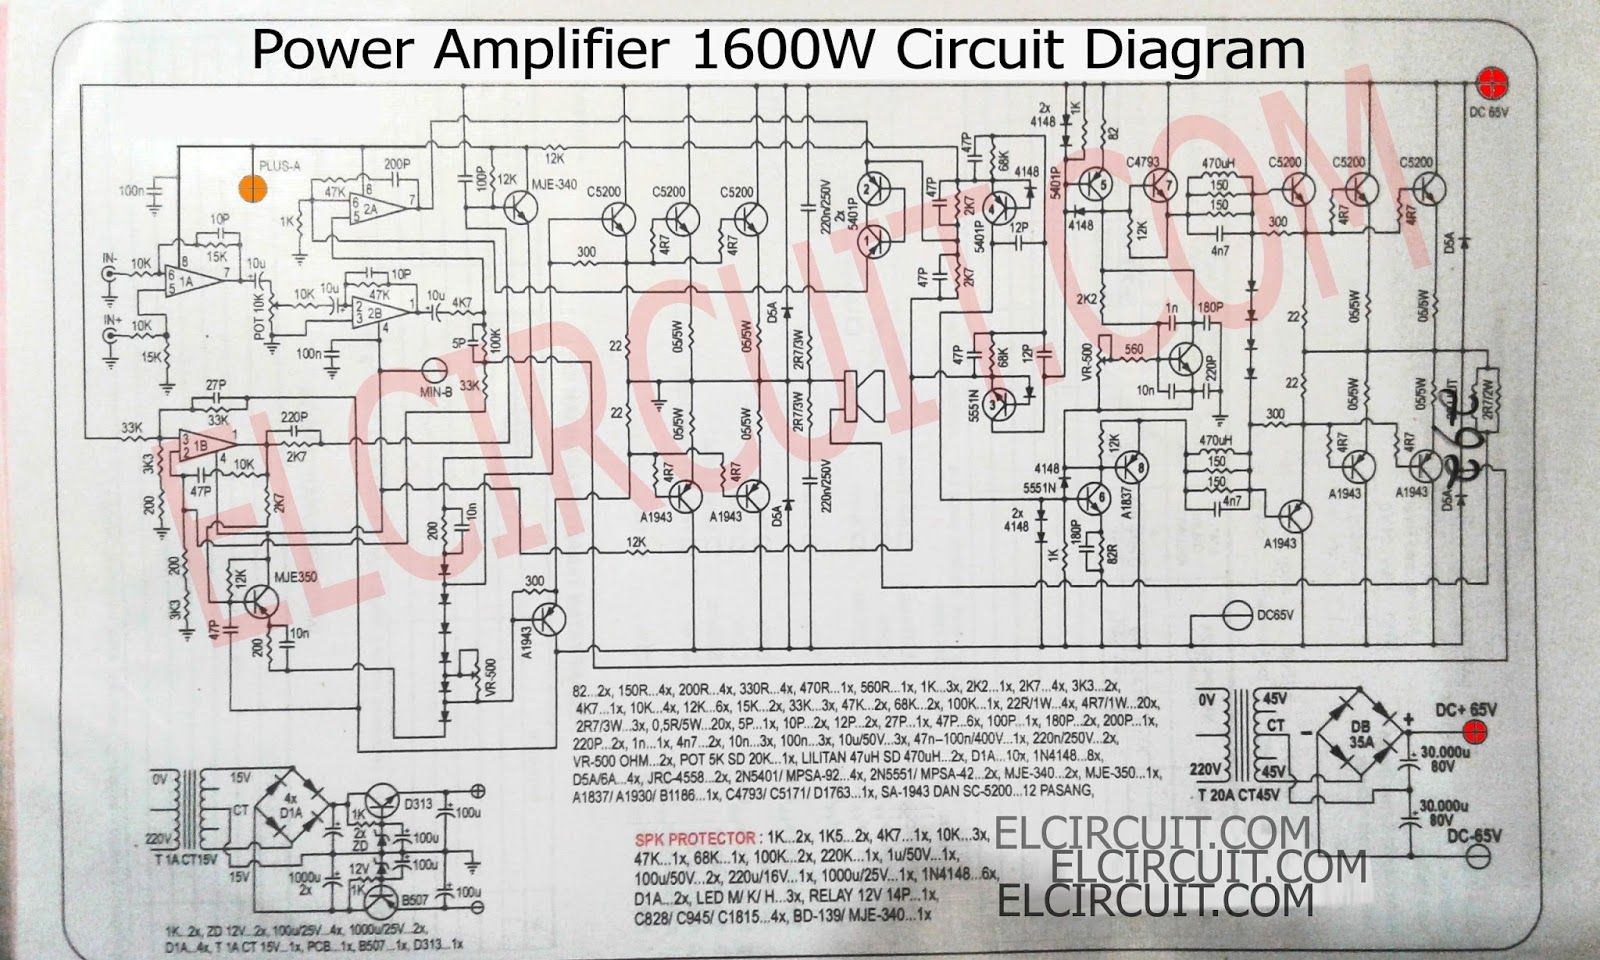 hight resolution of this power amplifier circuit is a 1600w mono circuit that uses transistors as an amplifier